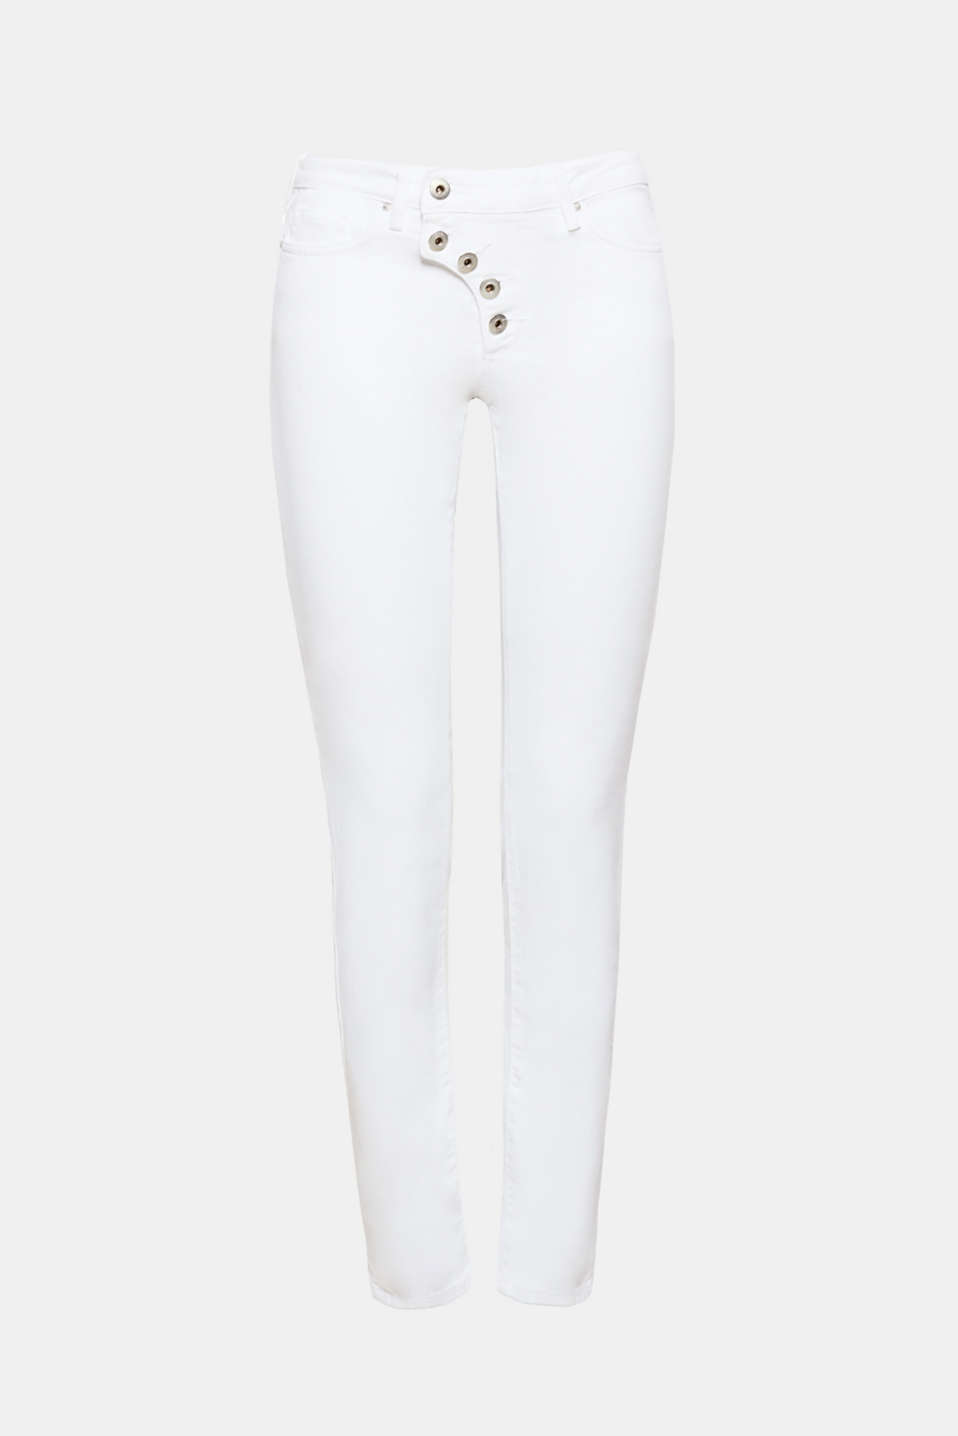 We love white denim! The clean dye effect and distinctive button placket give these white five-pocket jeans their trendy look.